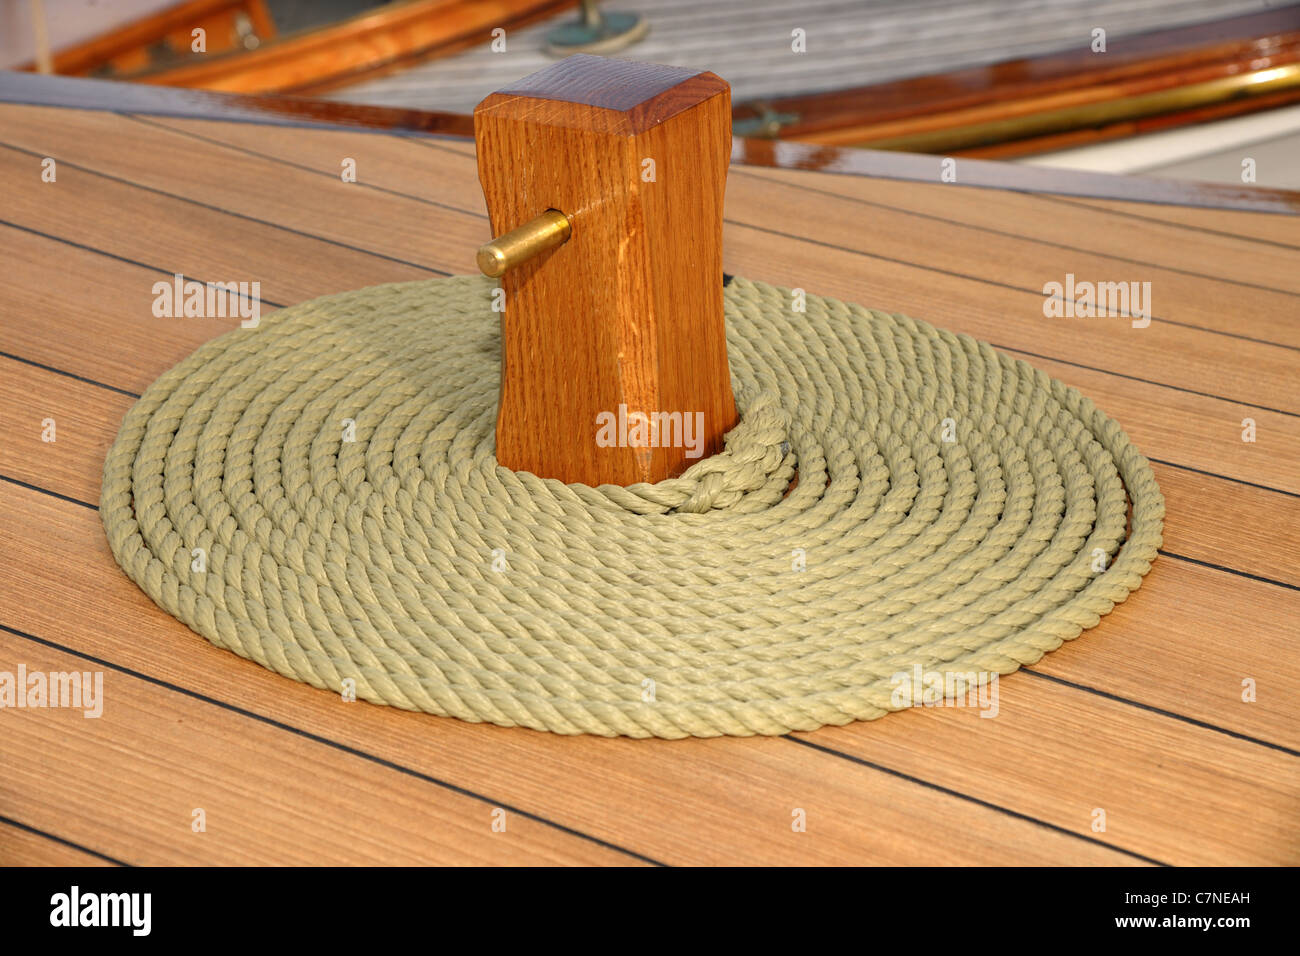 Coiled rope on teak deck. Decorative coiling is called 'cheesing' or 'flemish coil' and was used - Stock Image